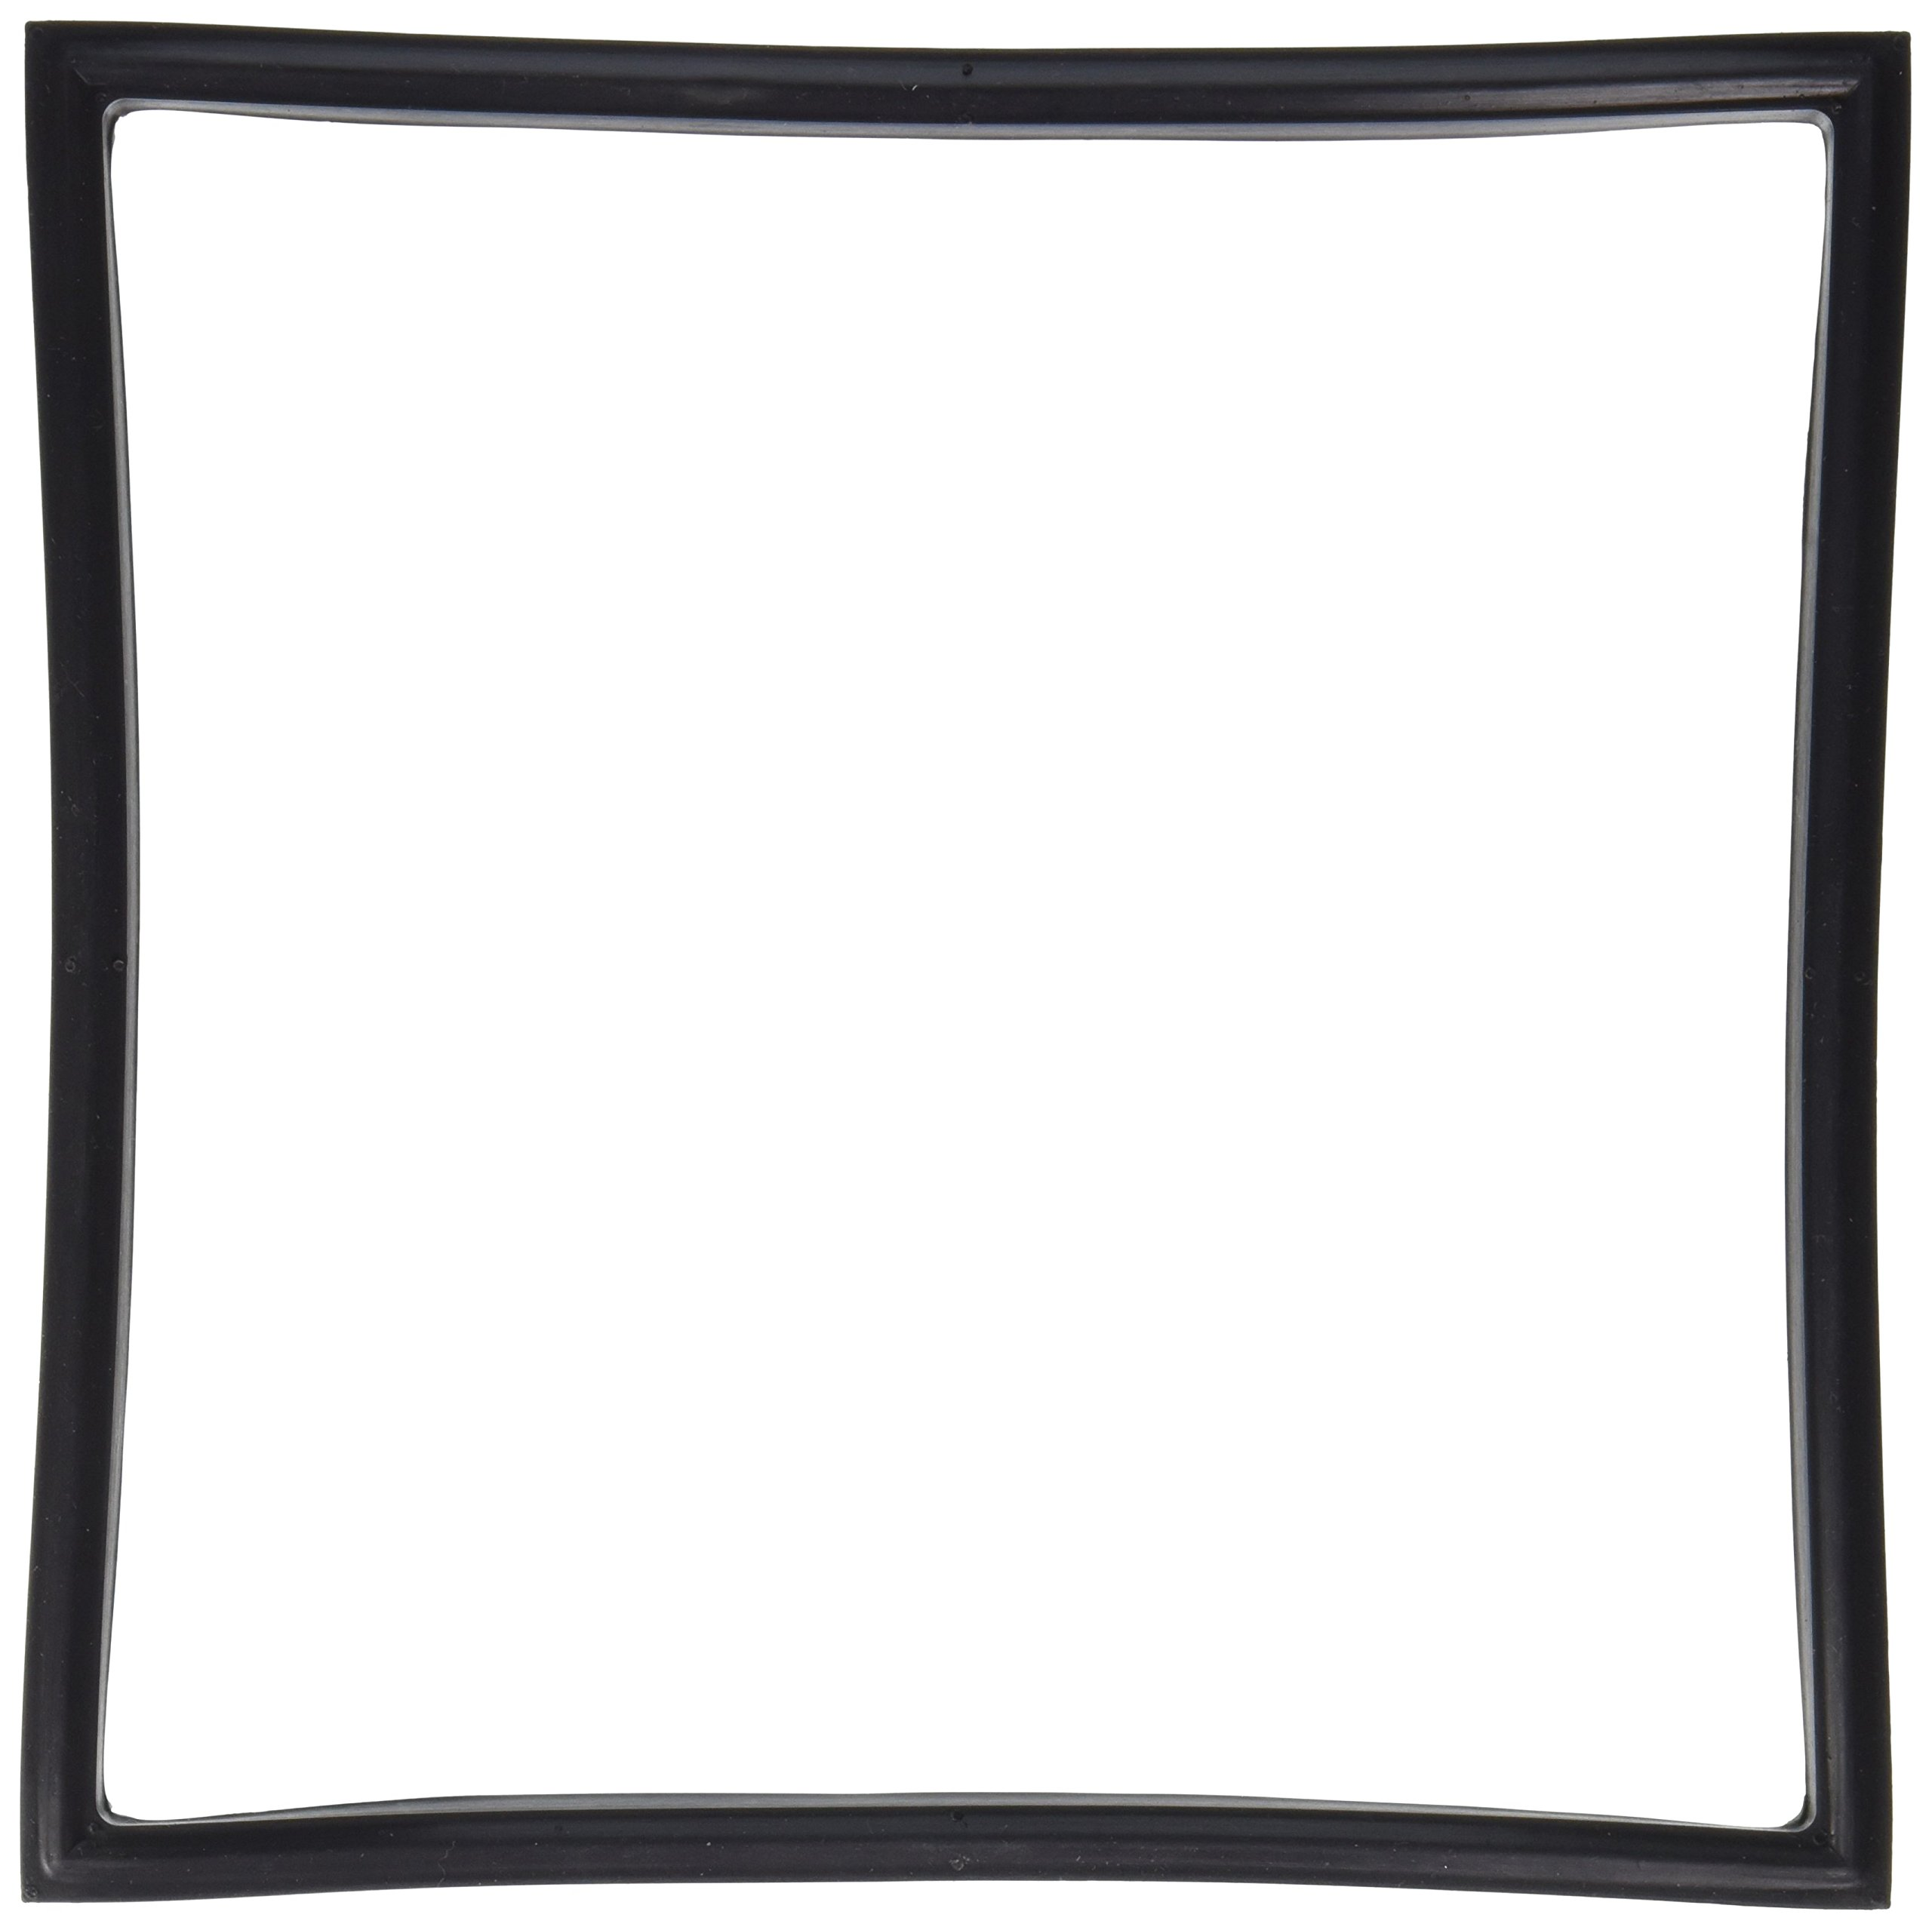 Lindberg/Blue M 305994H01 Silicone Replacement Door Gasket for Vacuum Oven